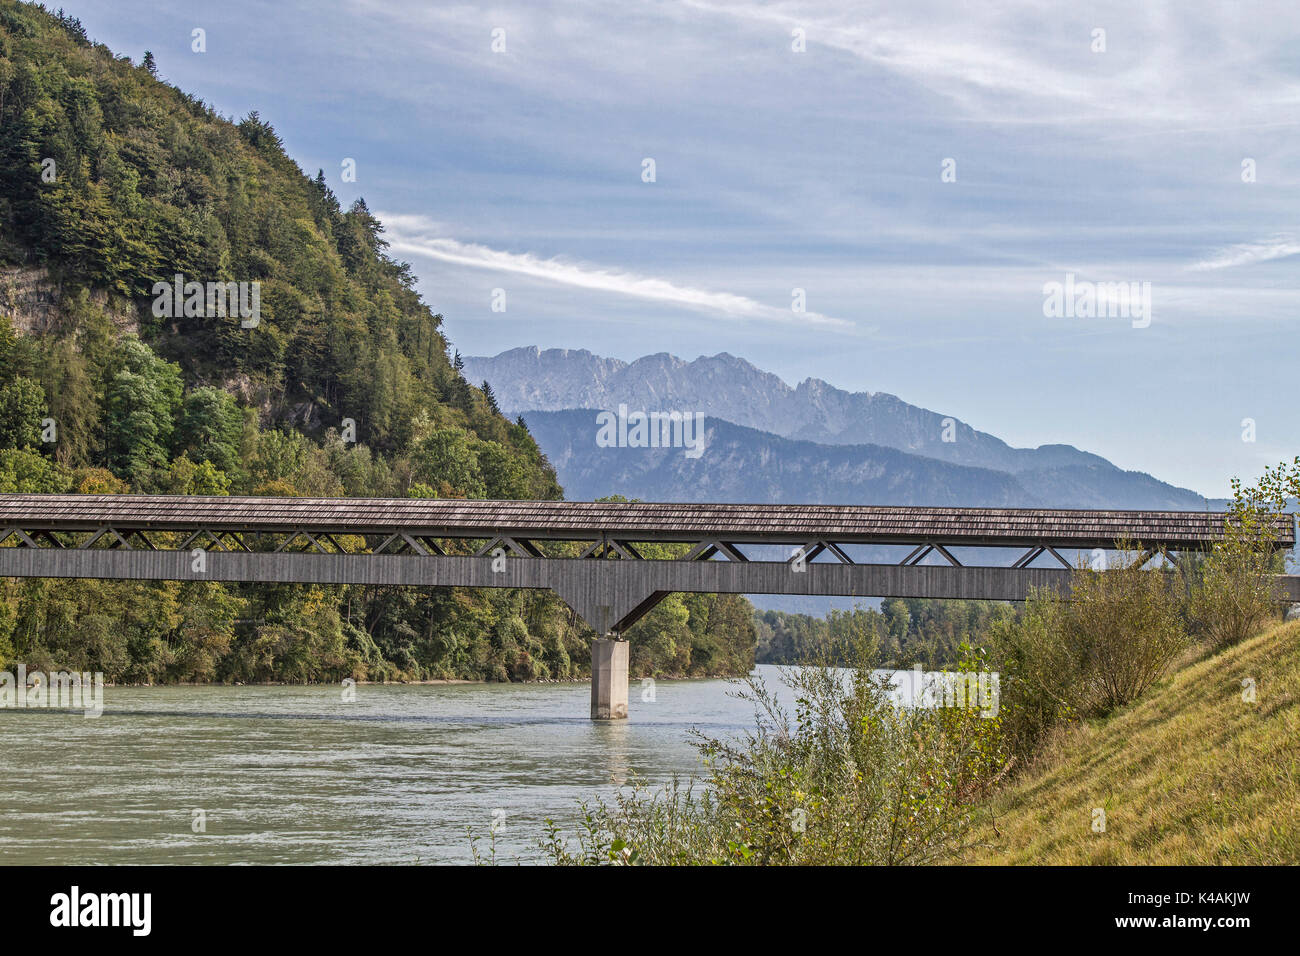 The Wooden Rustic Zollhaus Bridge Allows Pedestrians And Cyclists At Niederaudorf The Transition To Austria - Stock Image